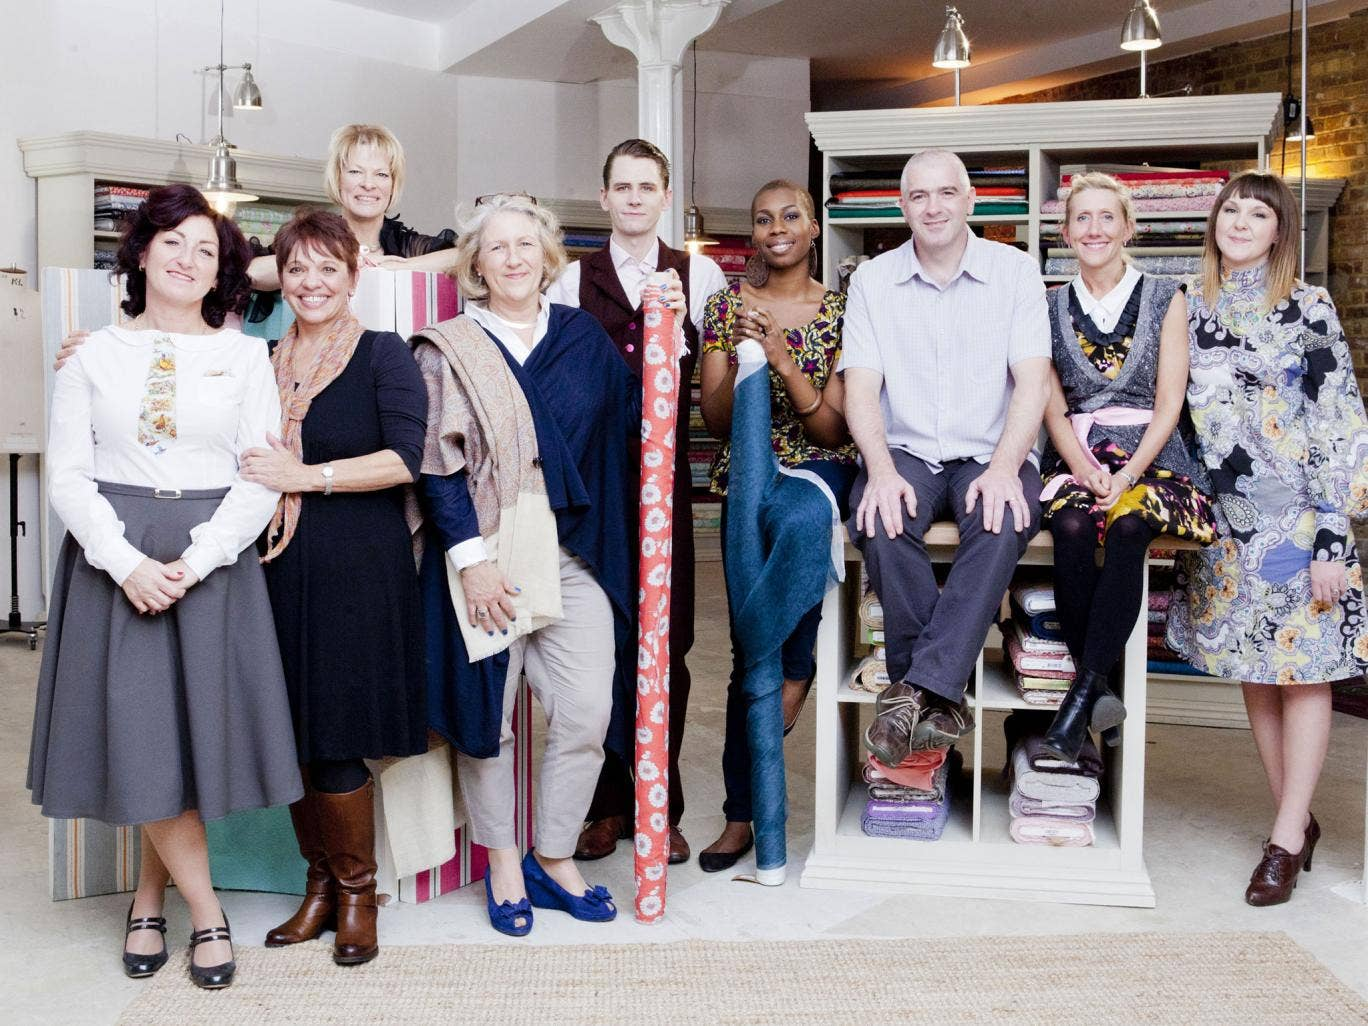 Julie, Lynda, Heather, Cerina, Simon, Chinelo, David, Tamara, Jenni are competing in the new series of The Great British Sewing Bee